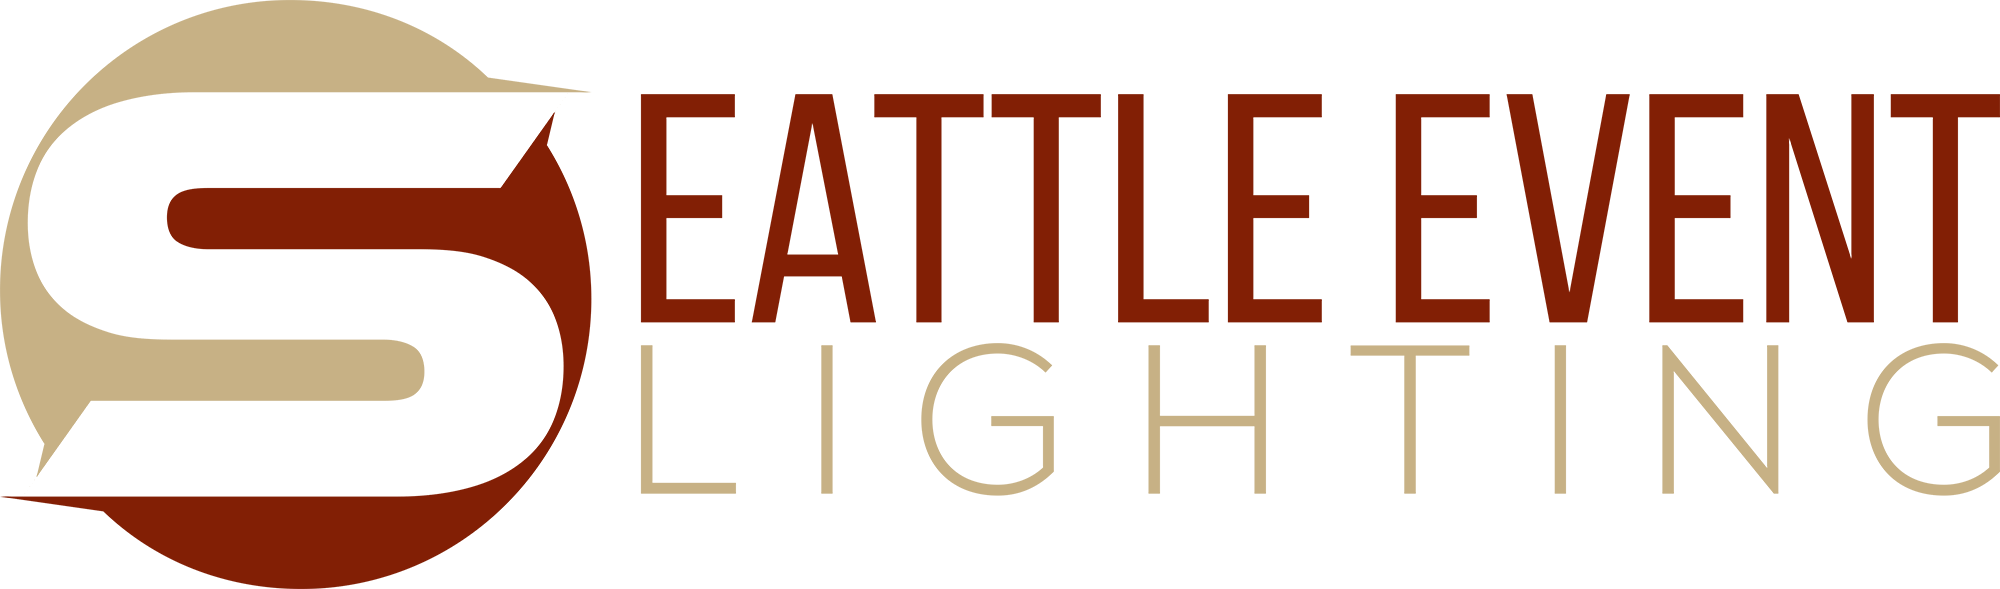 seattle event lighting wedding event light rentals